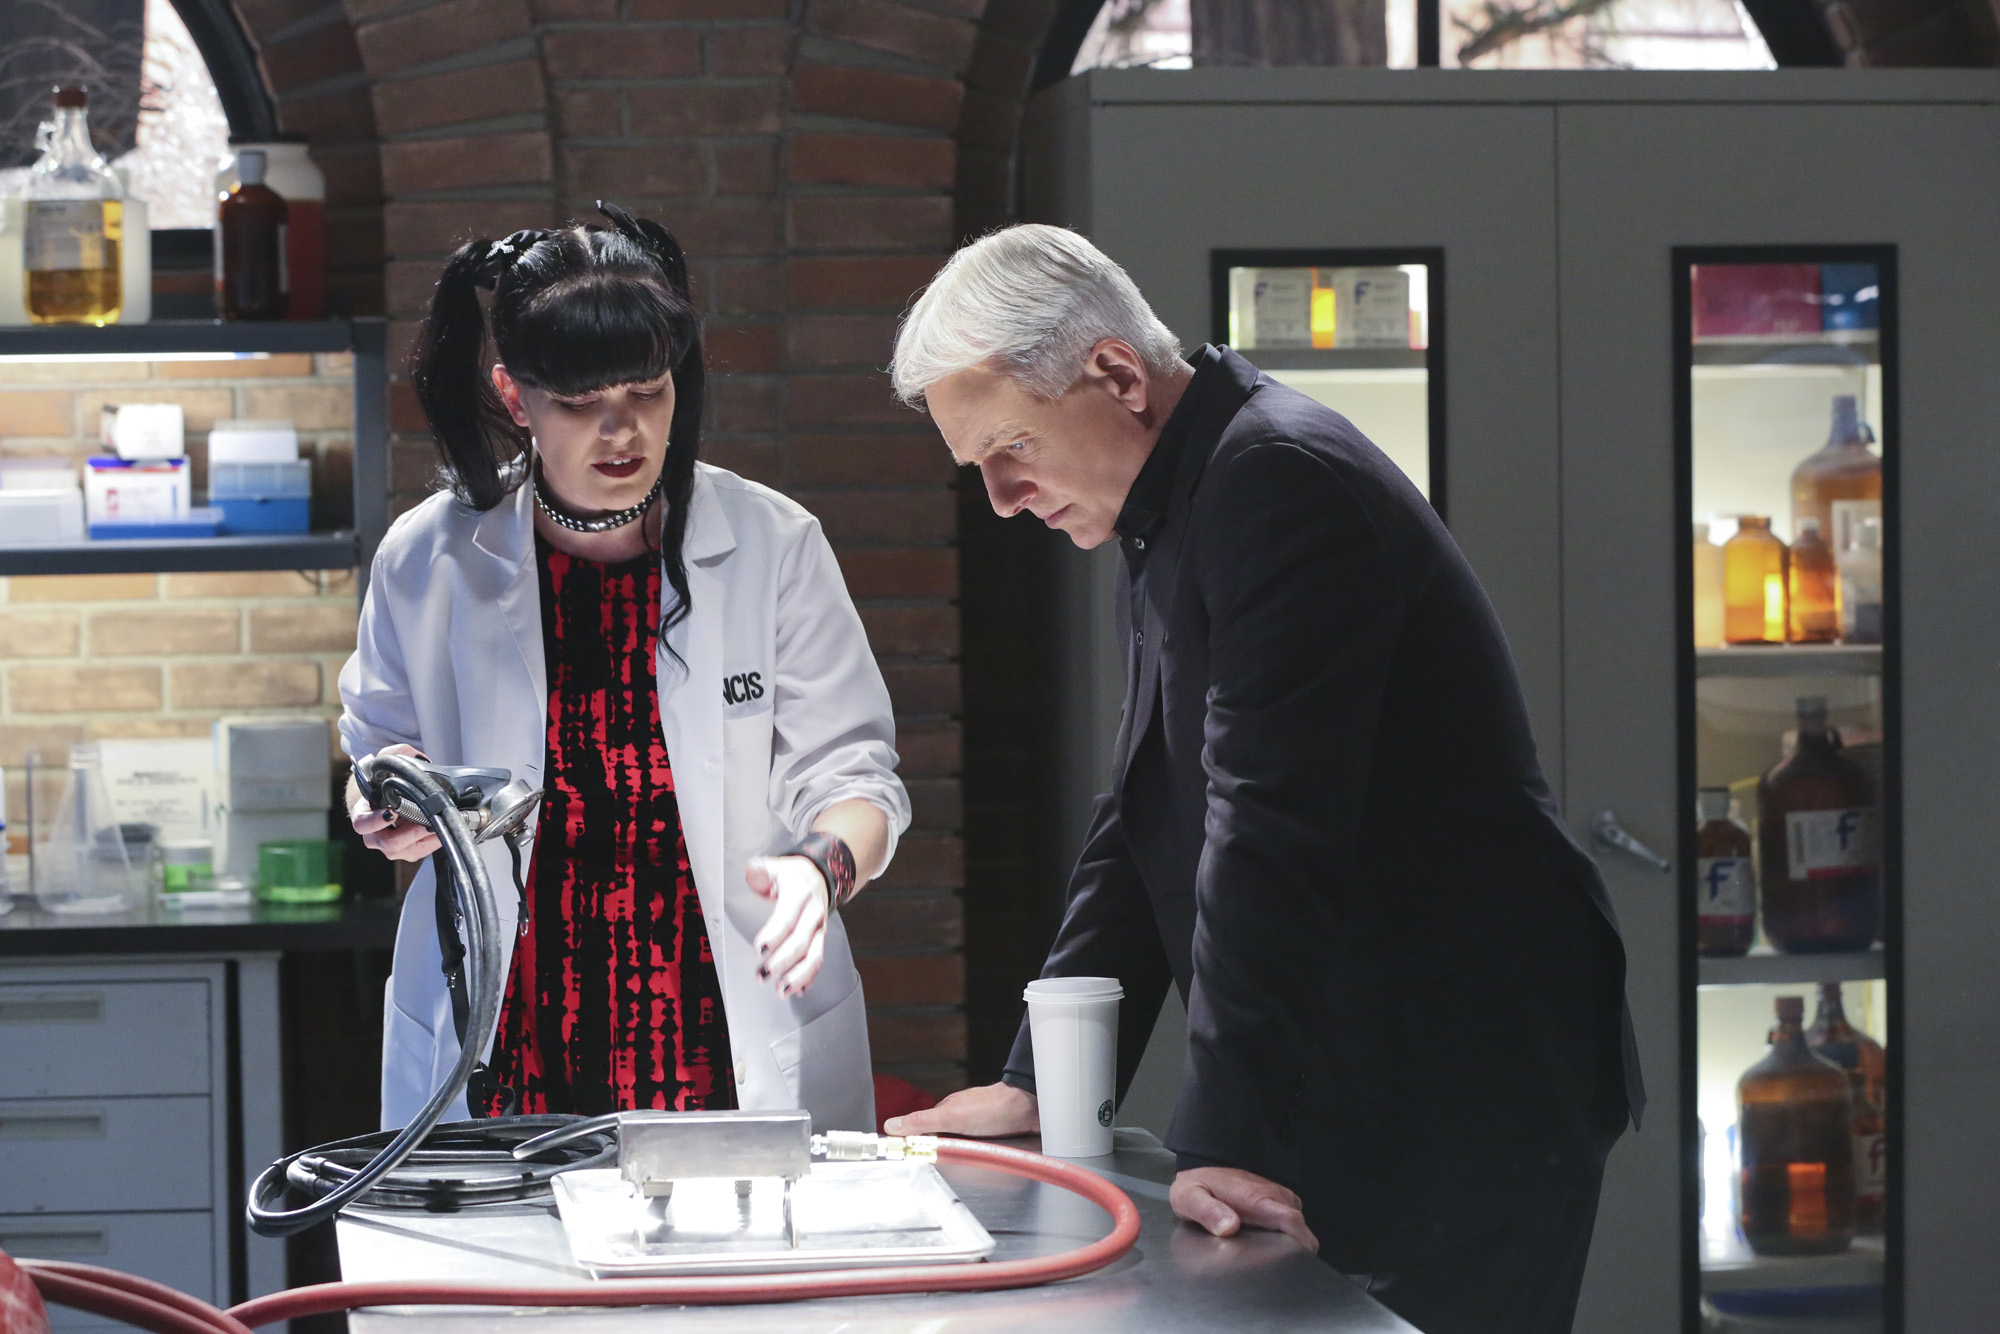 "In this image released by CBS,  Pauley Perrette, left, and Mark Harmon appear in a scene from ""NCIS.""  CBS dominated in the ratings last week with a winning slate of dramas and comedies as well as a Republican presidential debate, which ranked fourth. For the week of Feb. 8-12, the top 10 shows, their networks and viewerships: Â?NCIS,Â? CBS, 16.94 million; ""The Big Bang Theory,Â? CBS, 16.25 million; Â?The Walking Dead,Â? AMC, 13.74 million; Â?Campaign Â?16 Republican Debate,Â? CBS, 13.44 million; Â?NCIS: New Orleans,Â? CBS, 12.59 million; Â?Scorpion,Â? CBS, 11.36 million; Â?Blue Bloods,Â? CBS, 10.92 million; Â?60 Minutes,Â? CBS, 10.42 million; Â?Madam Secretary,Â? CBS, 10.61 million; Â?NCIS: Los Angeles,Â? CBS, 9.76 million. (Michael Yarish/CBS via AP)"